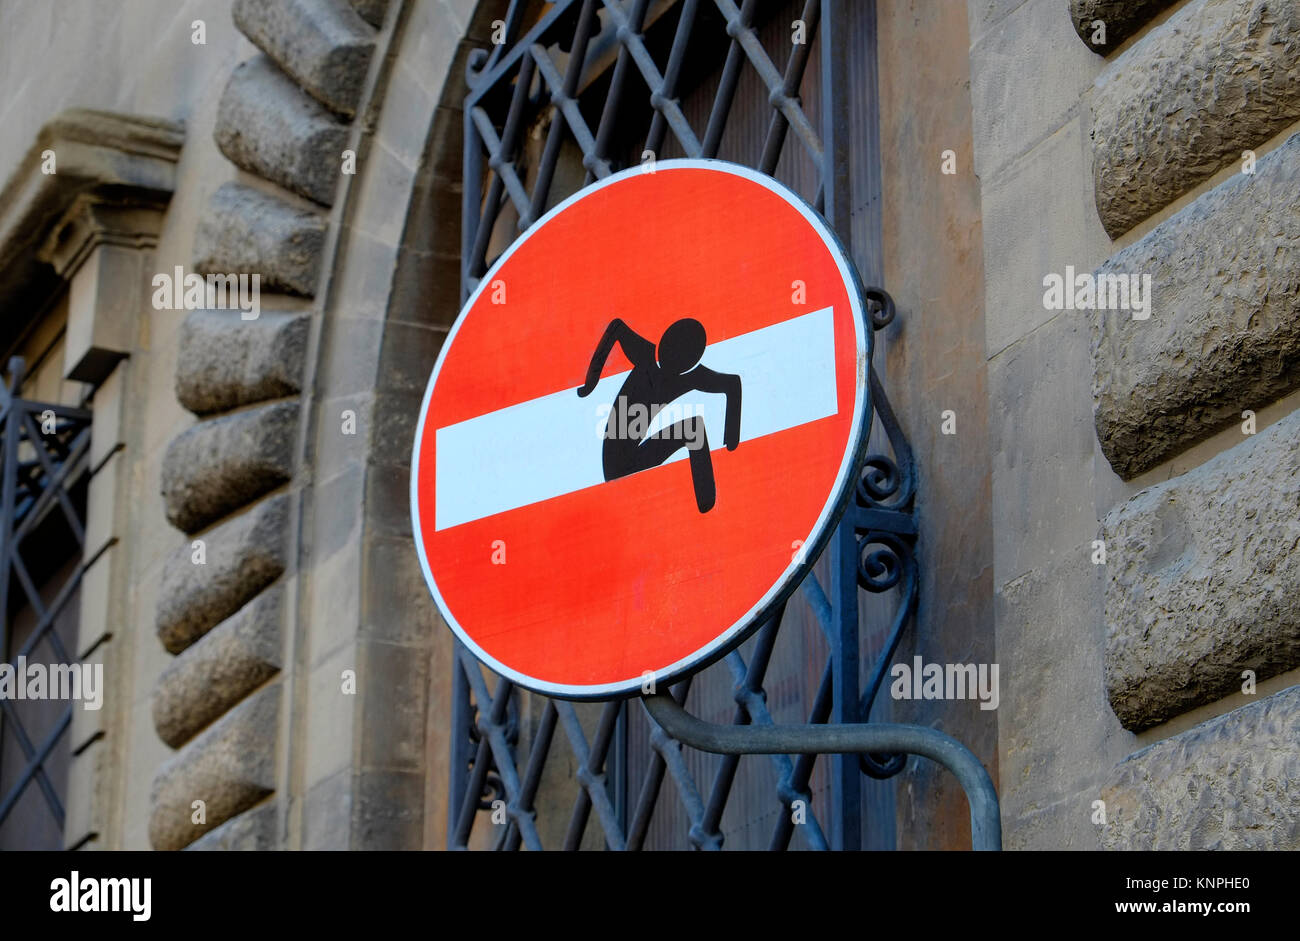 red no entry sign with graphic illustration of man climbing through horizontal white rectangular box - Stock Image